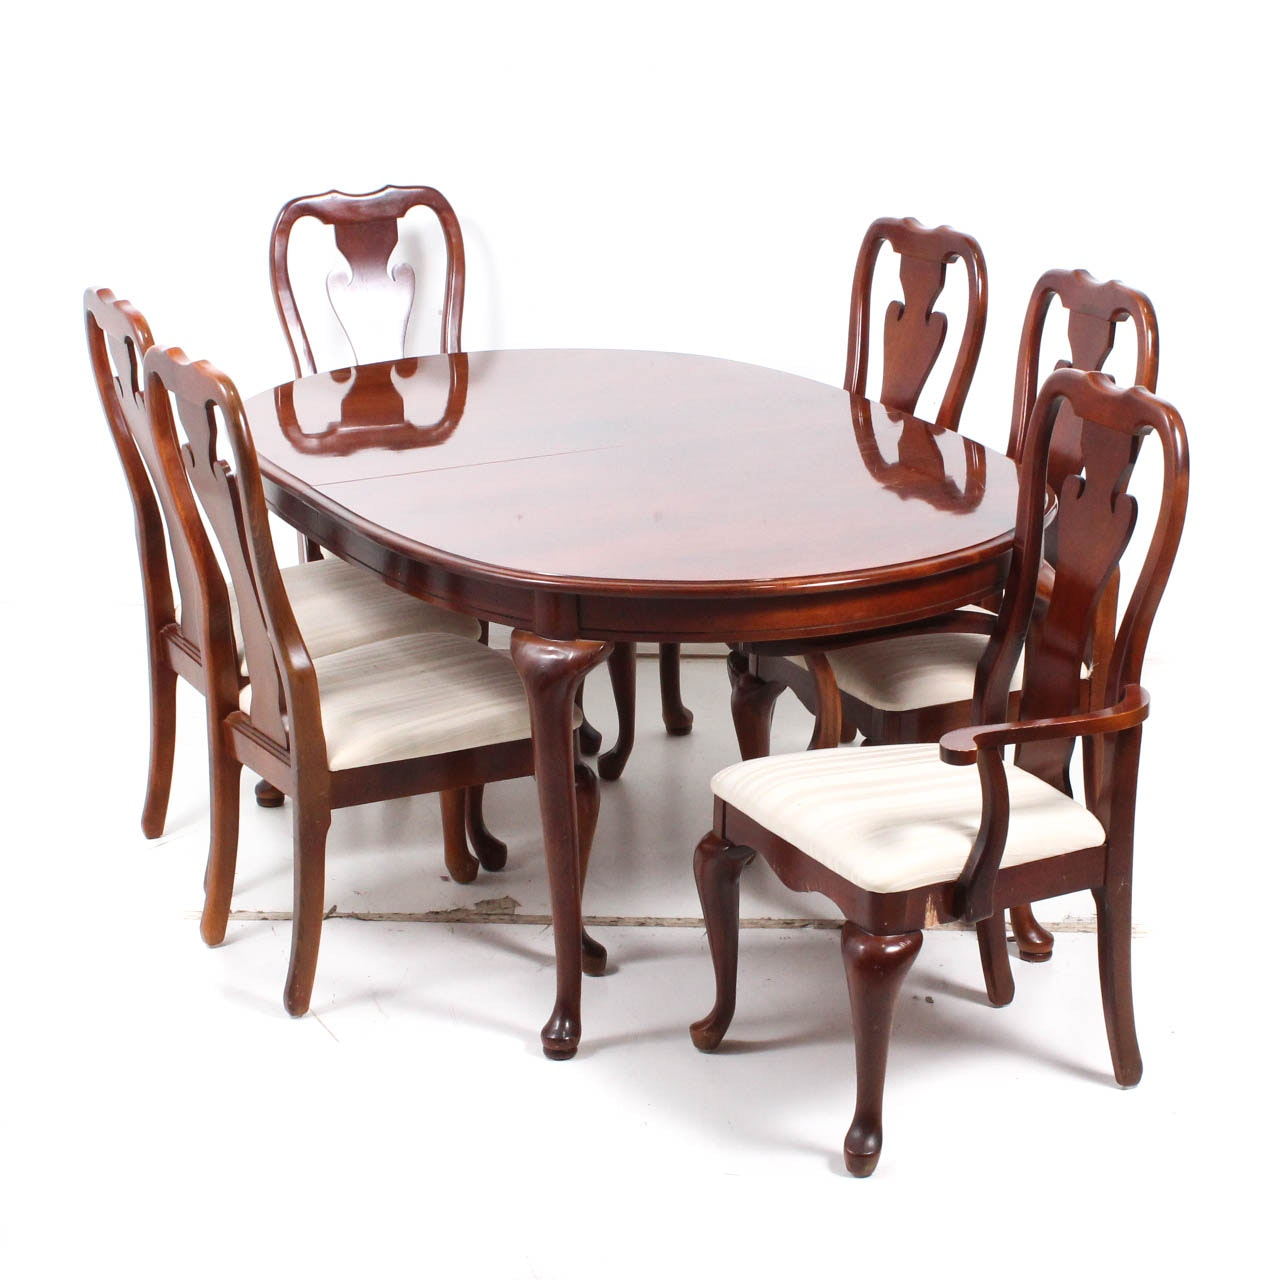 Queen Anne Style Thomasville Dining Table and Chairs